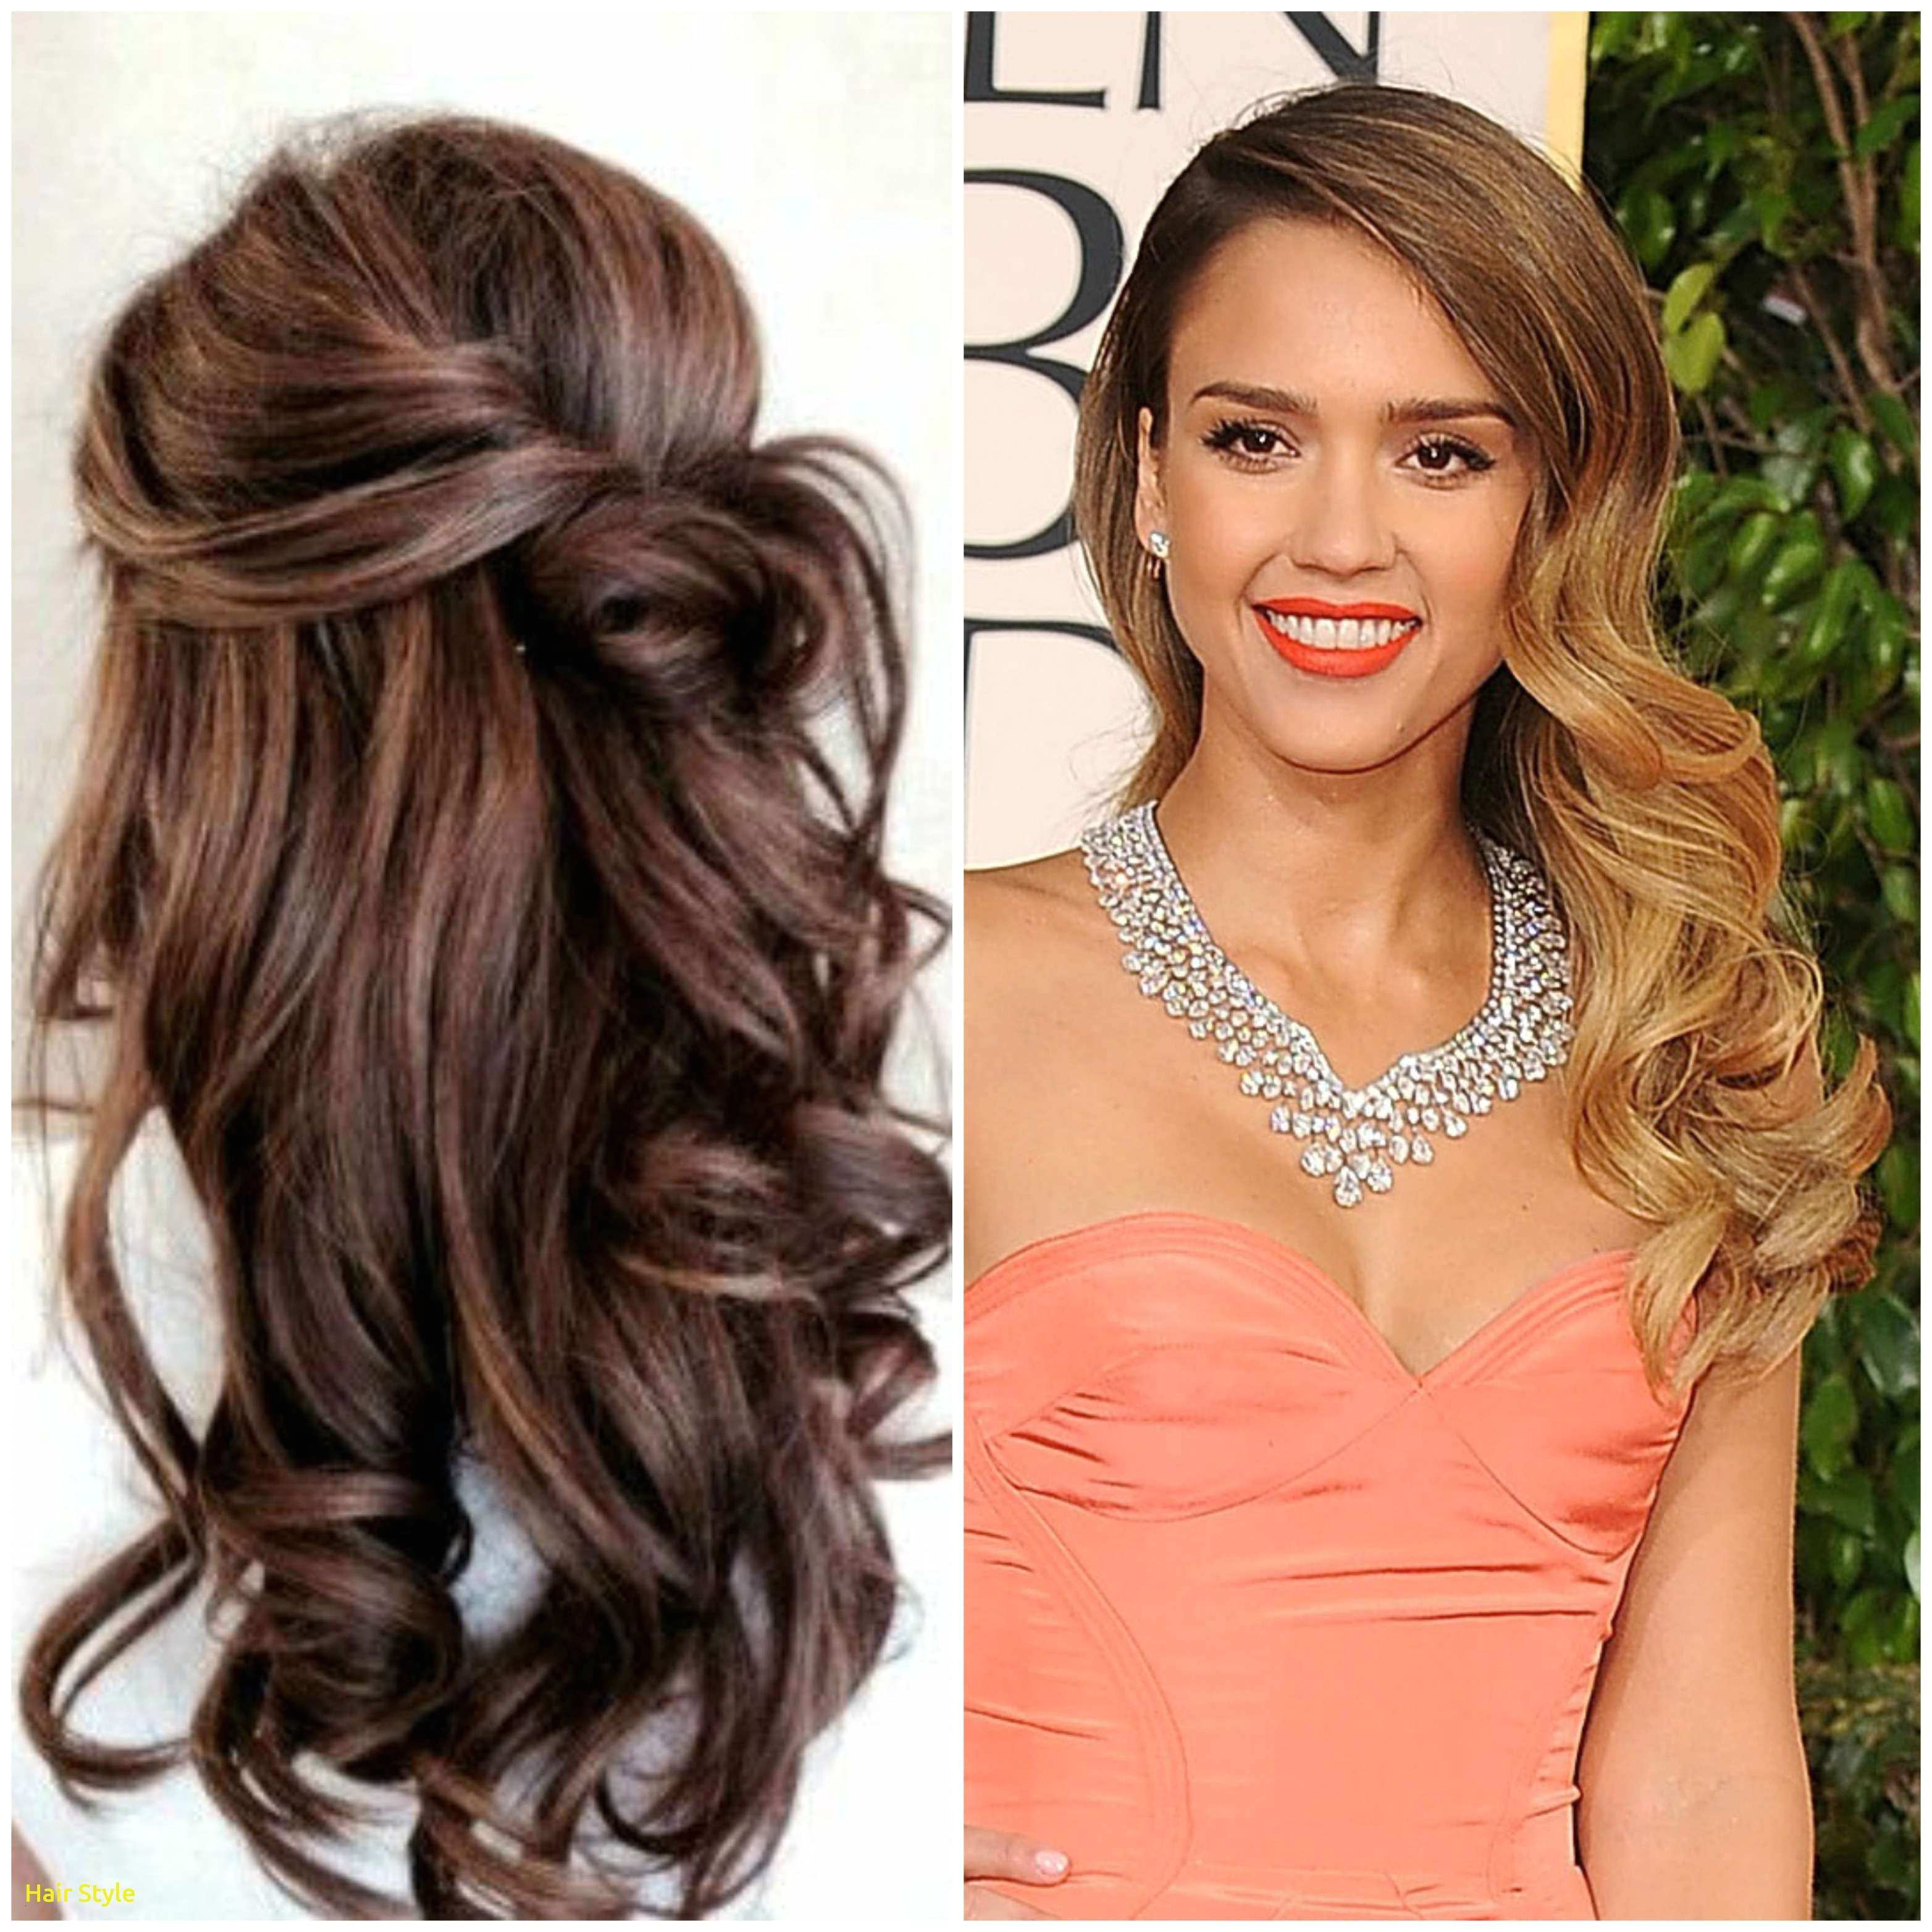 New Simple Hairstyle for Girl Best Fresh Simple Hairstyles for Girls with Medium Hair –